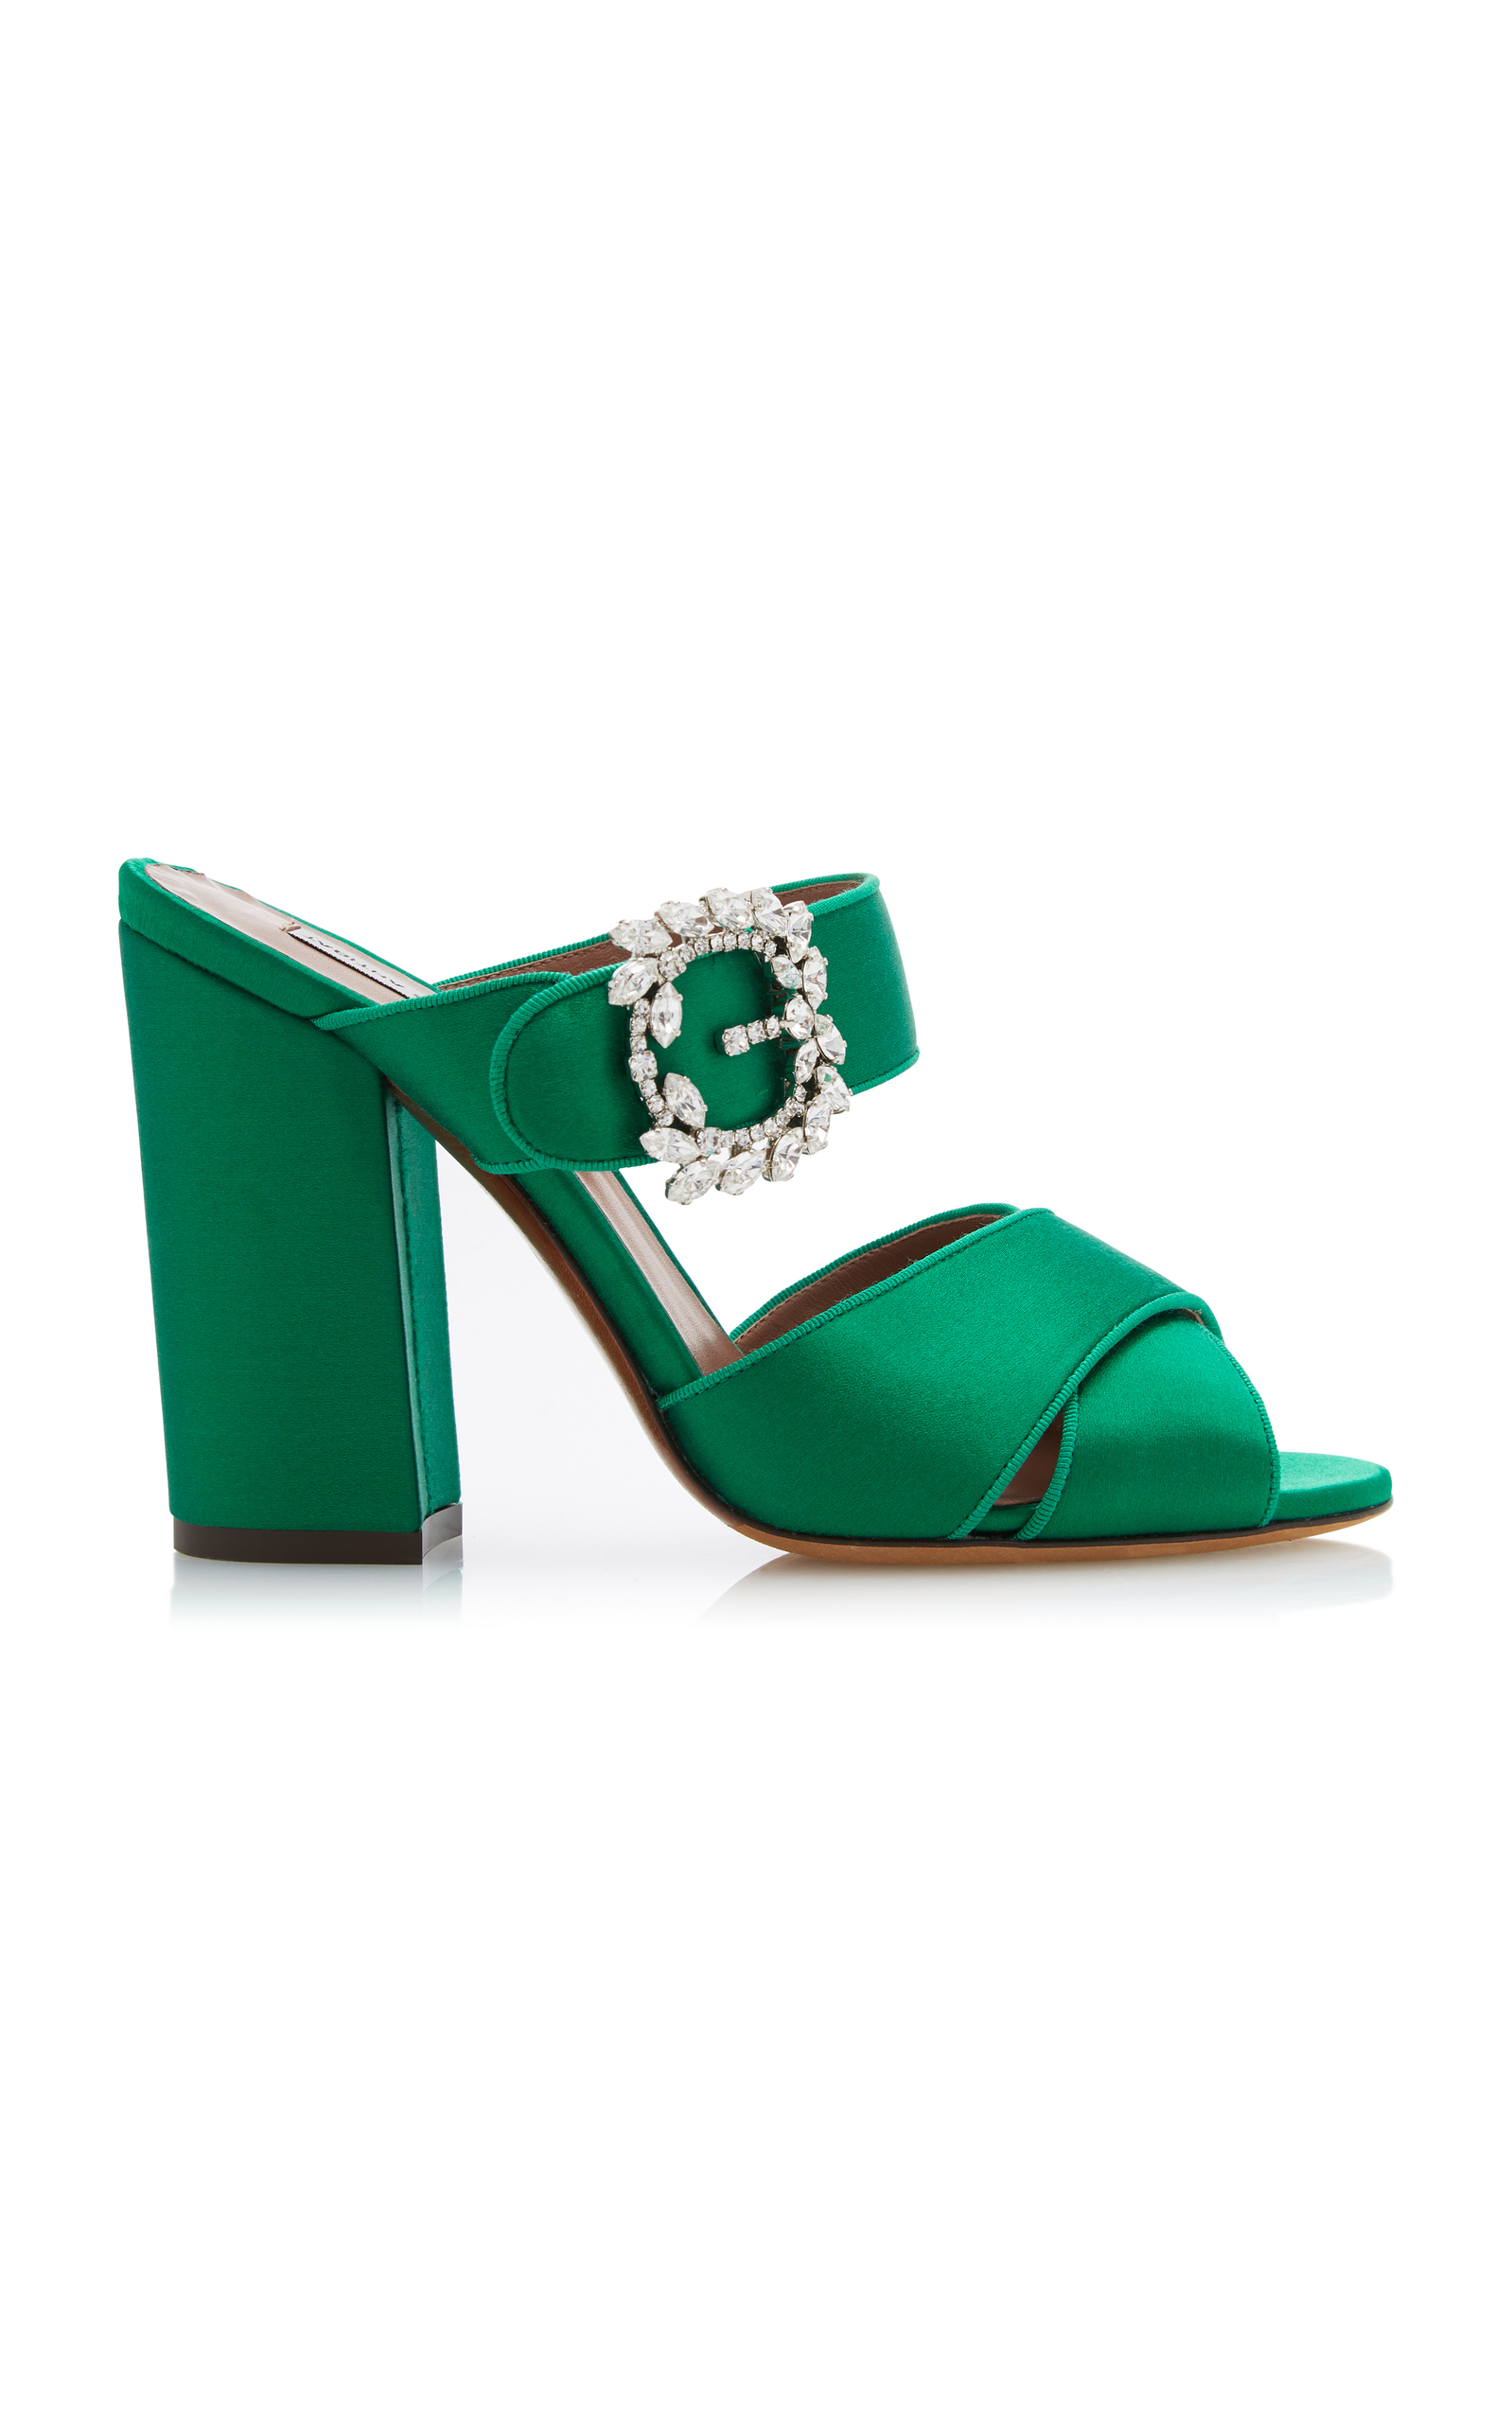 Tabitha Simmons Reyner Embellished Satin Sandals In Green Modesens Clarette Crystal Brown